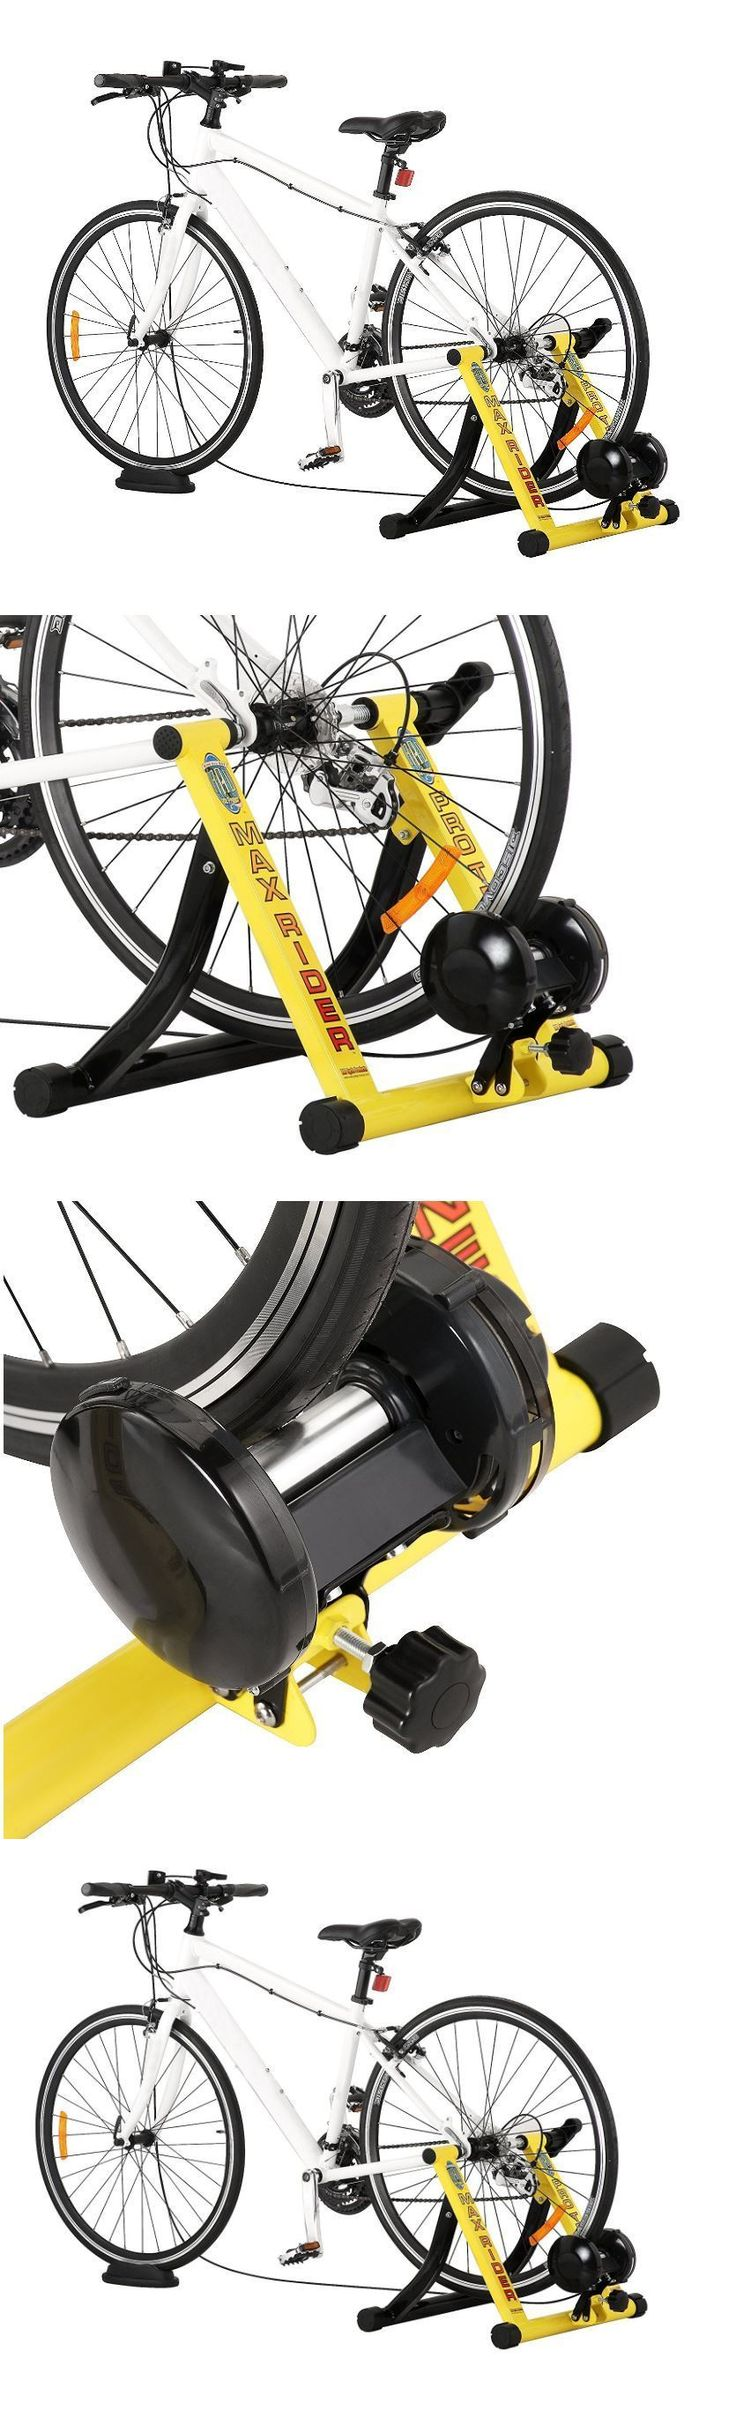 Trainers and Rollers 36141: Stationary Bike Stand Trainer Indoor Performance Cycle Bicycle Training Cycling -> BUY IT NOW ONLY: $99.95 on eBay!